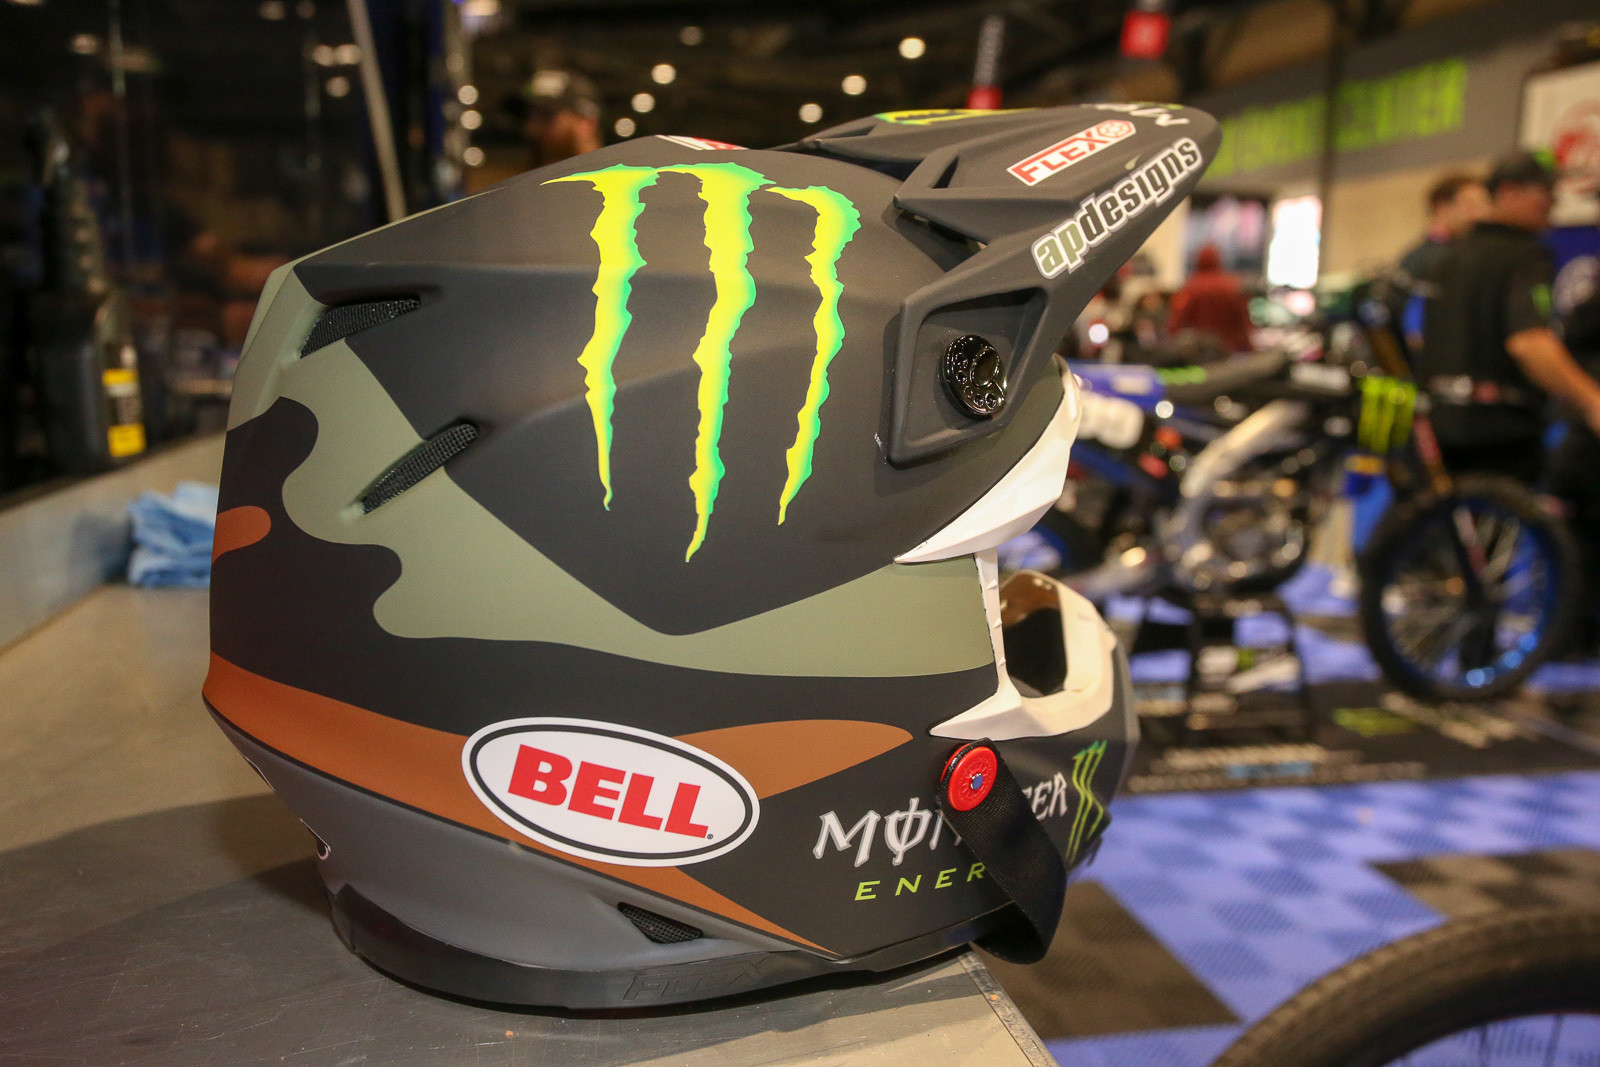 We have to say, the gear, helmet, goggle, and boot companies have done a stellar job of synchronizing their color combos this season. This Bell matches up nicely with the Thor gear that the Yamalube Star Racing Yamaha guys are wearing this weekend.